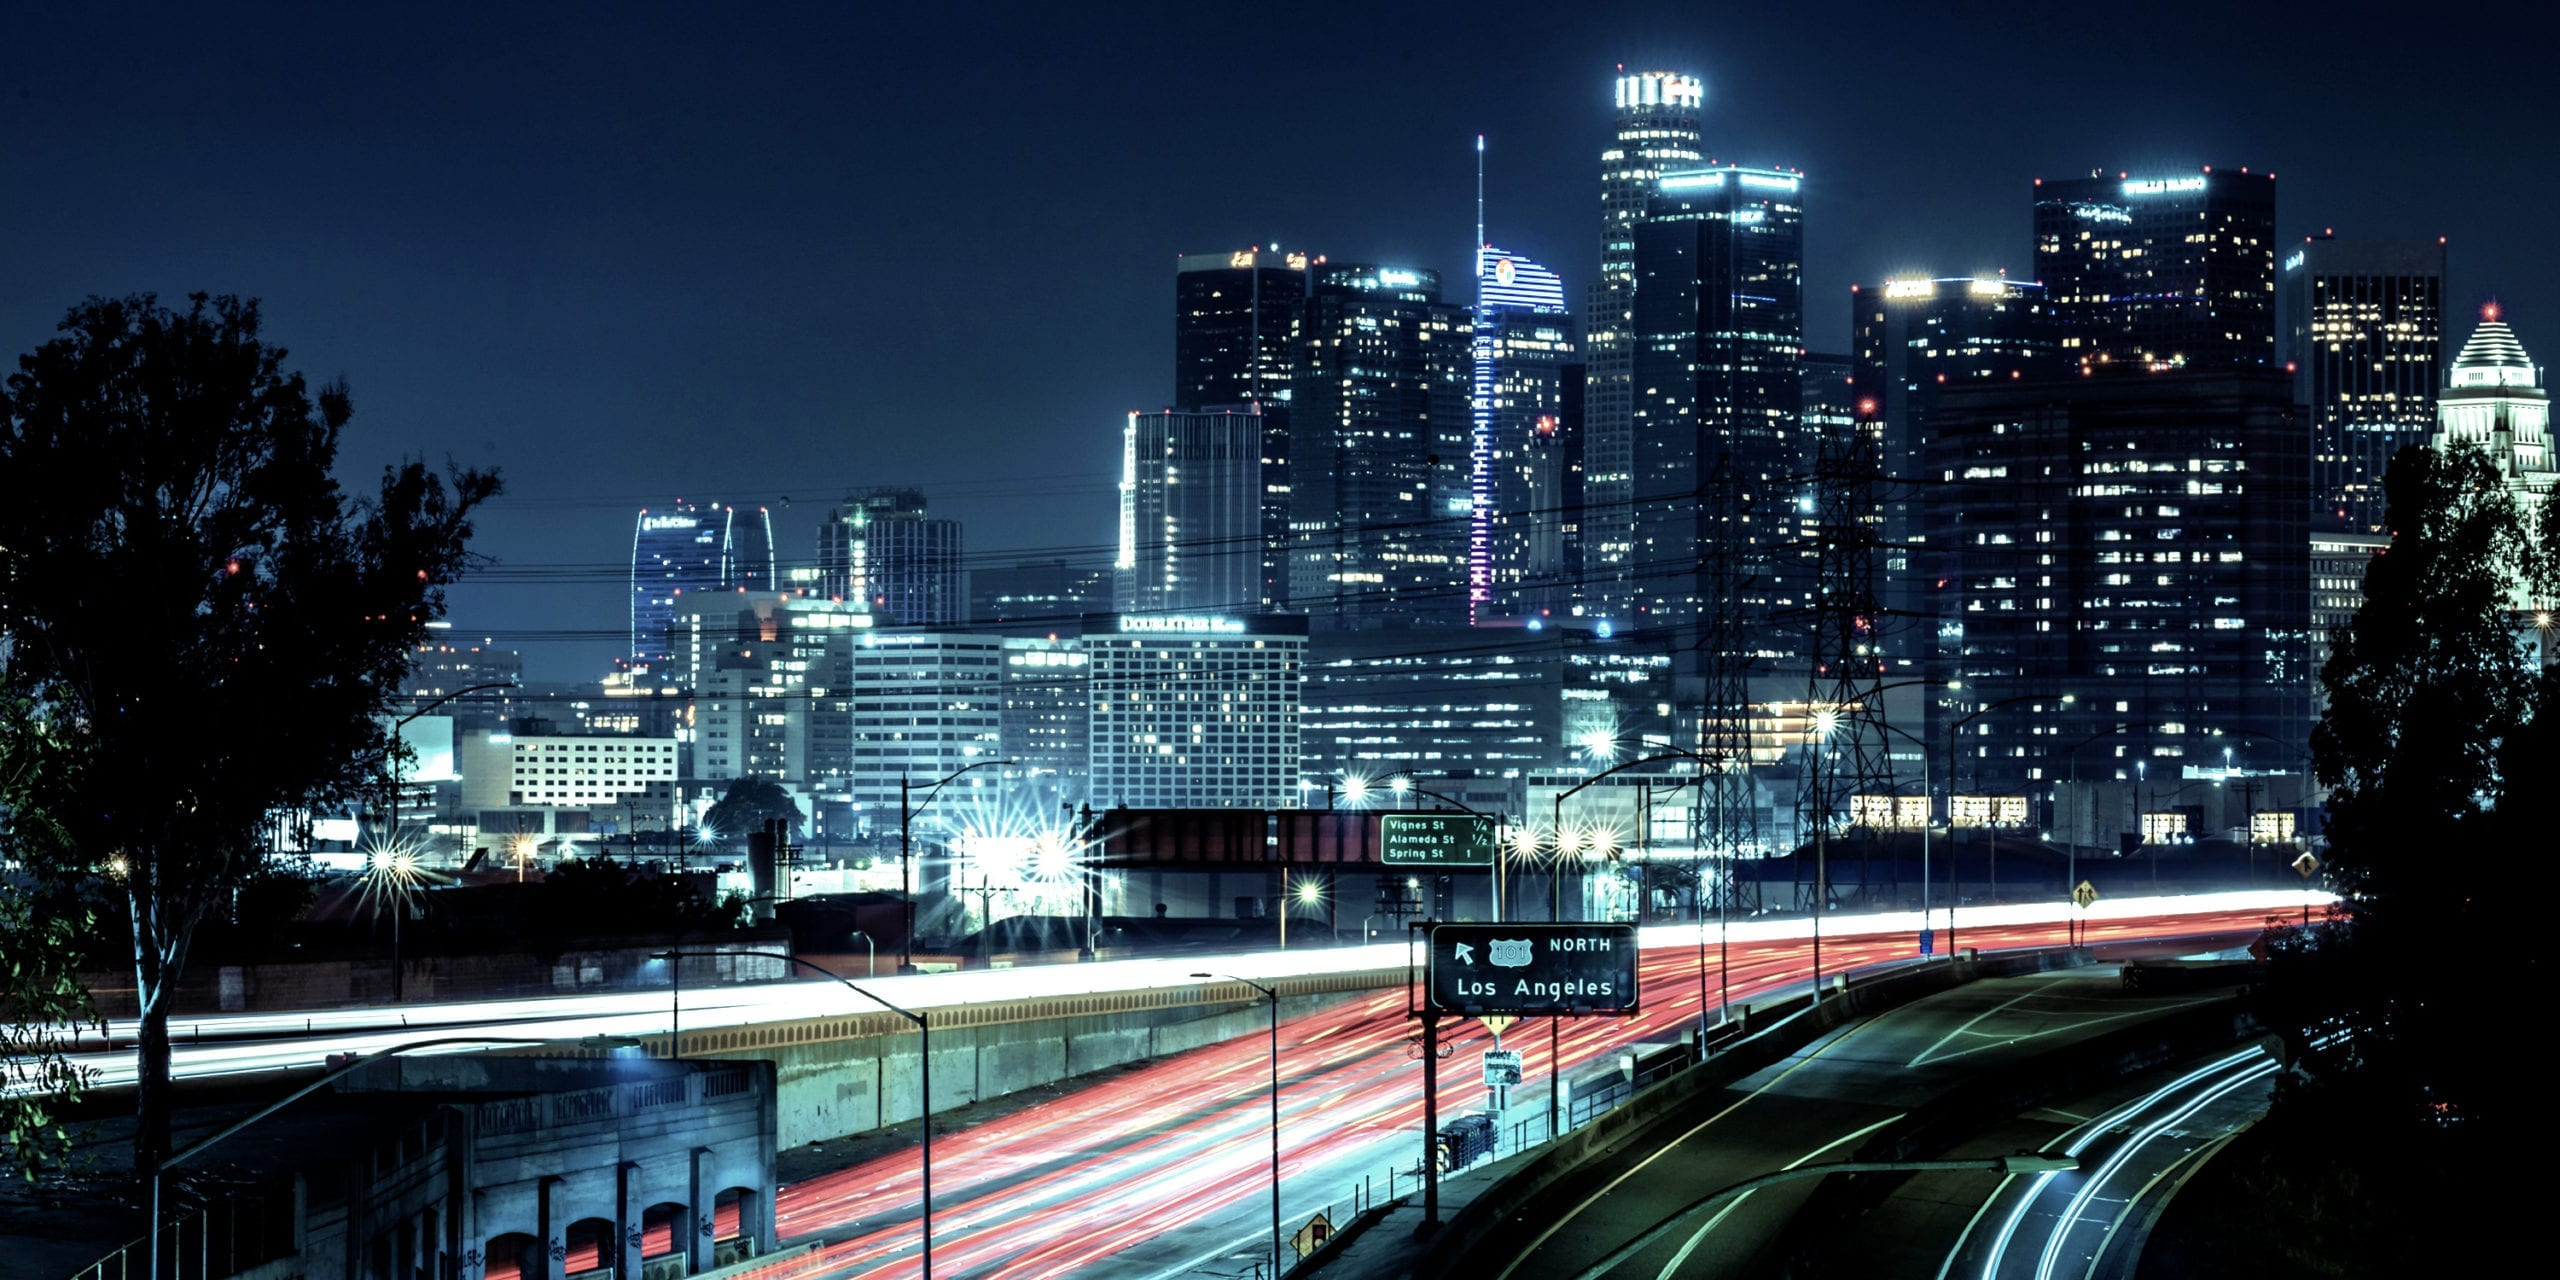 Los Angeles skyline at night. Photo by Flickr user Colin Durfee.